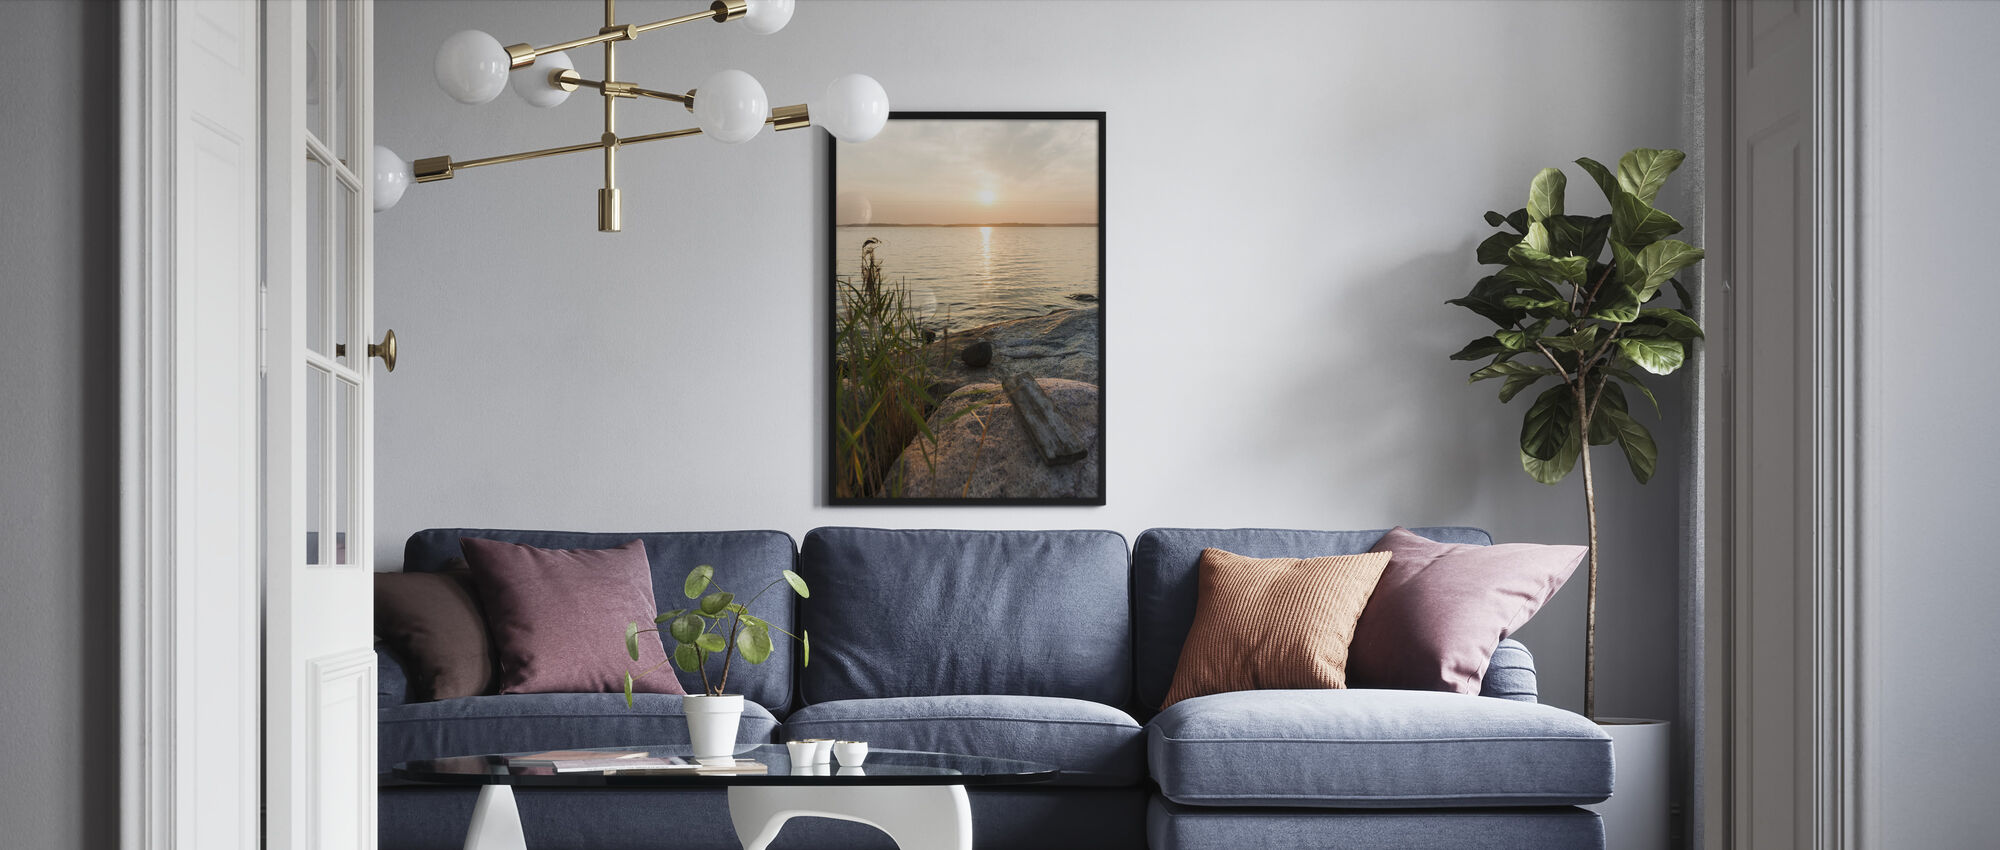 Sunset over Nässlingen, Sweden - Framed print - Living Room